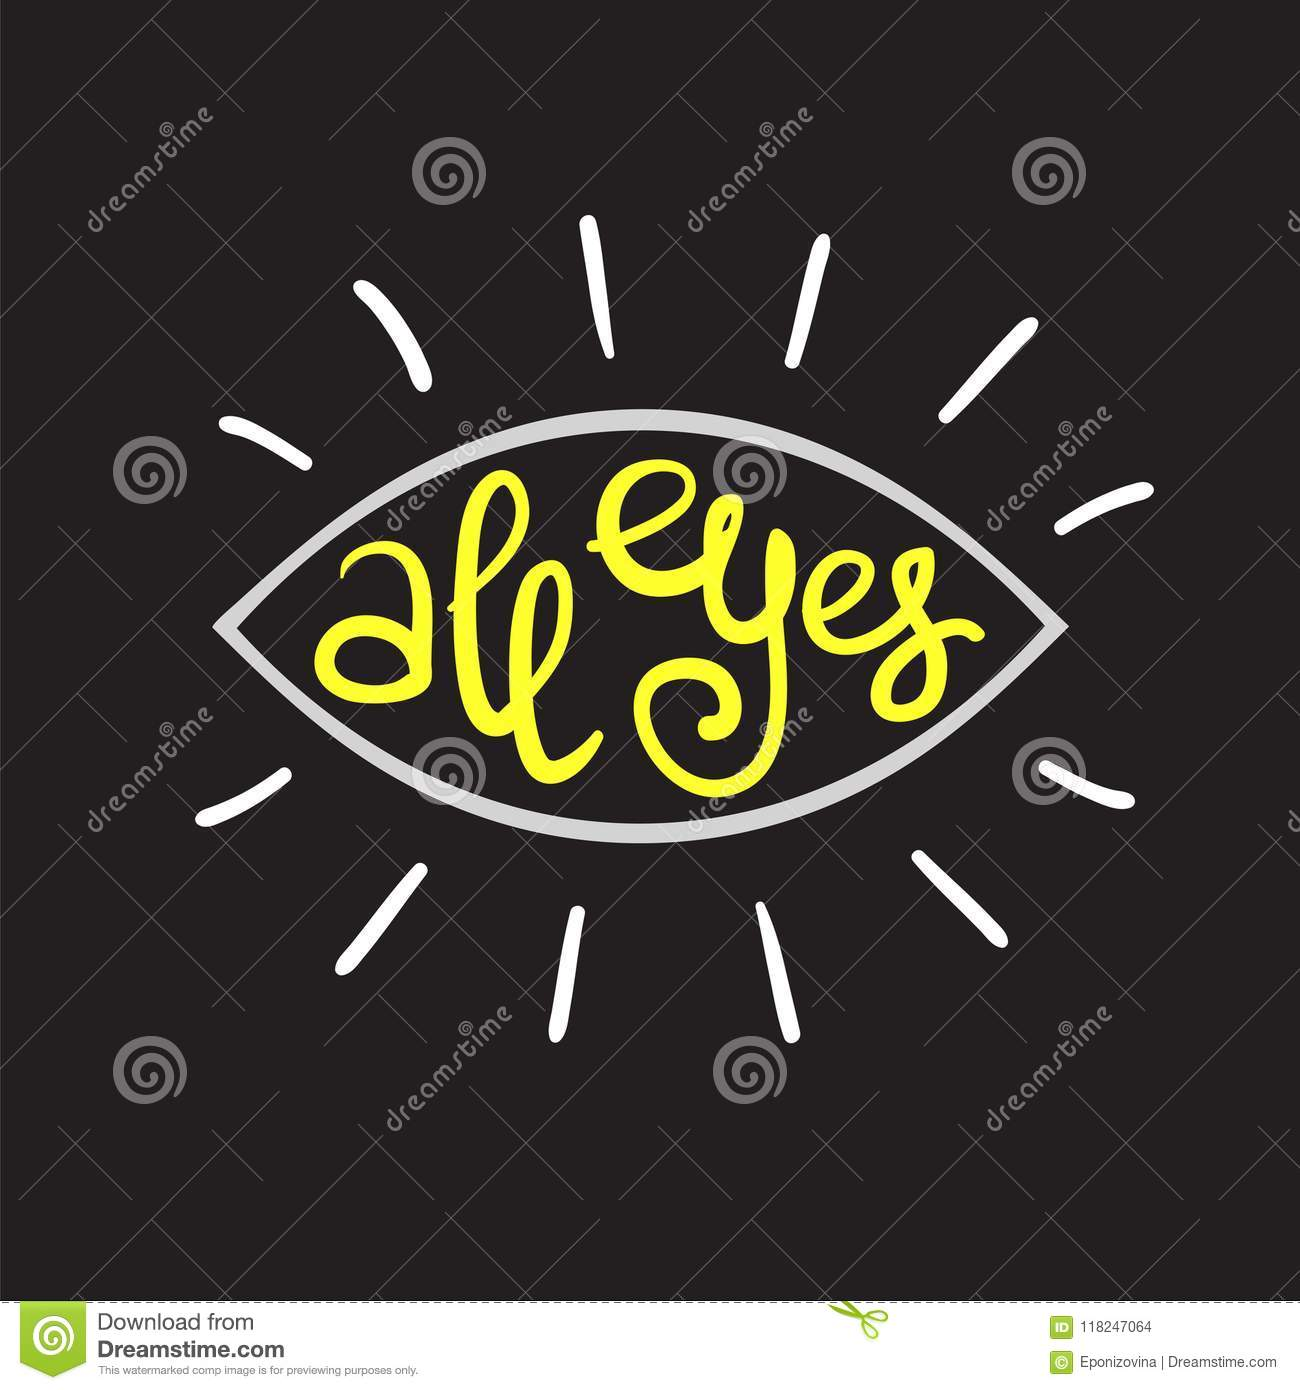 All Eyes - Handwritten Funny Motivational Quote, English ...